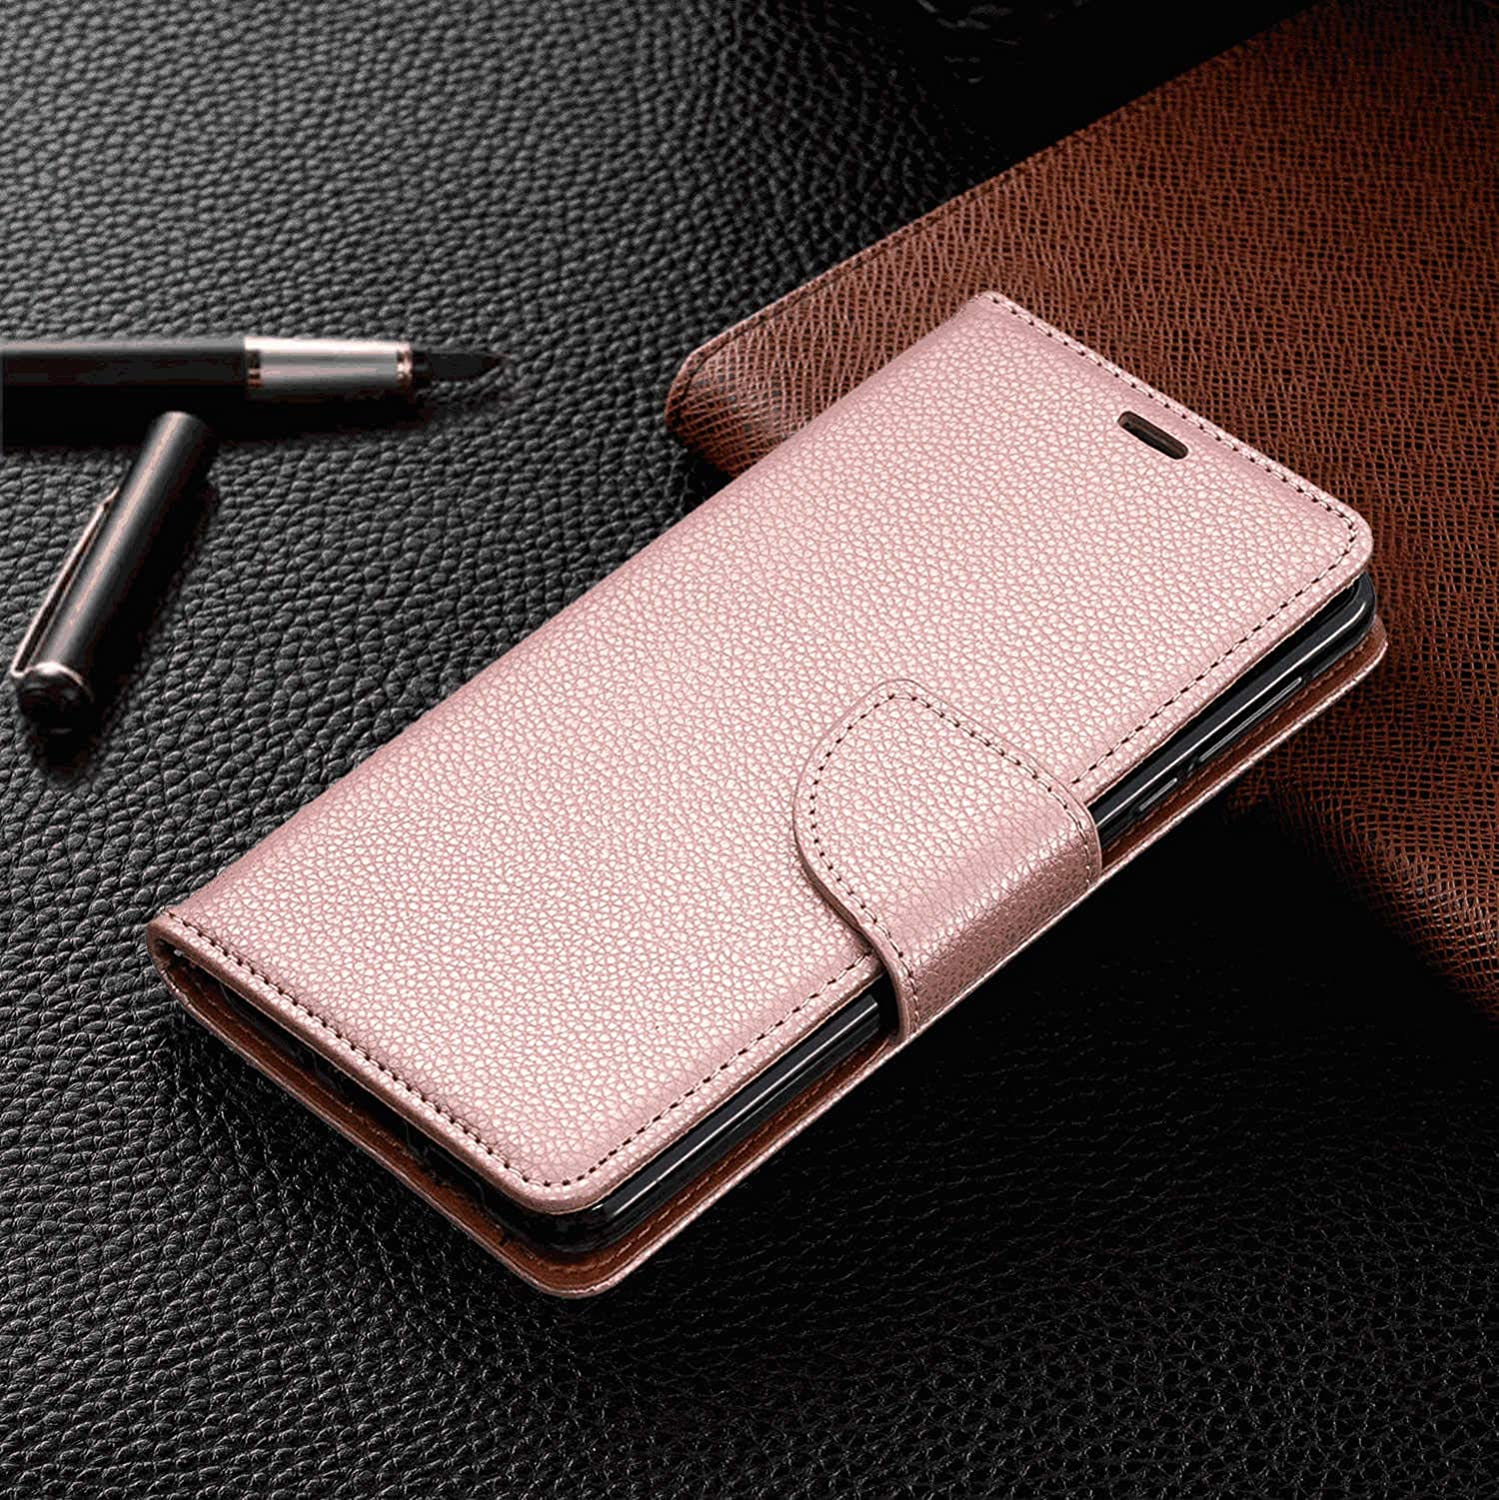 iPhone 8 Flip Case Cover for iPhone 8 Leather Kickstand Mobile Phone Cover Extra-Shockproof Business Card Holders with Free Waterproof-Bag Absorbing